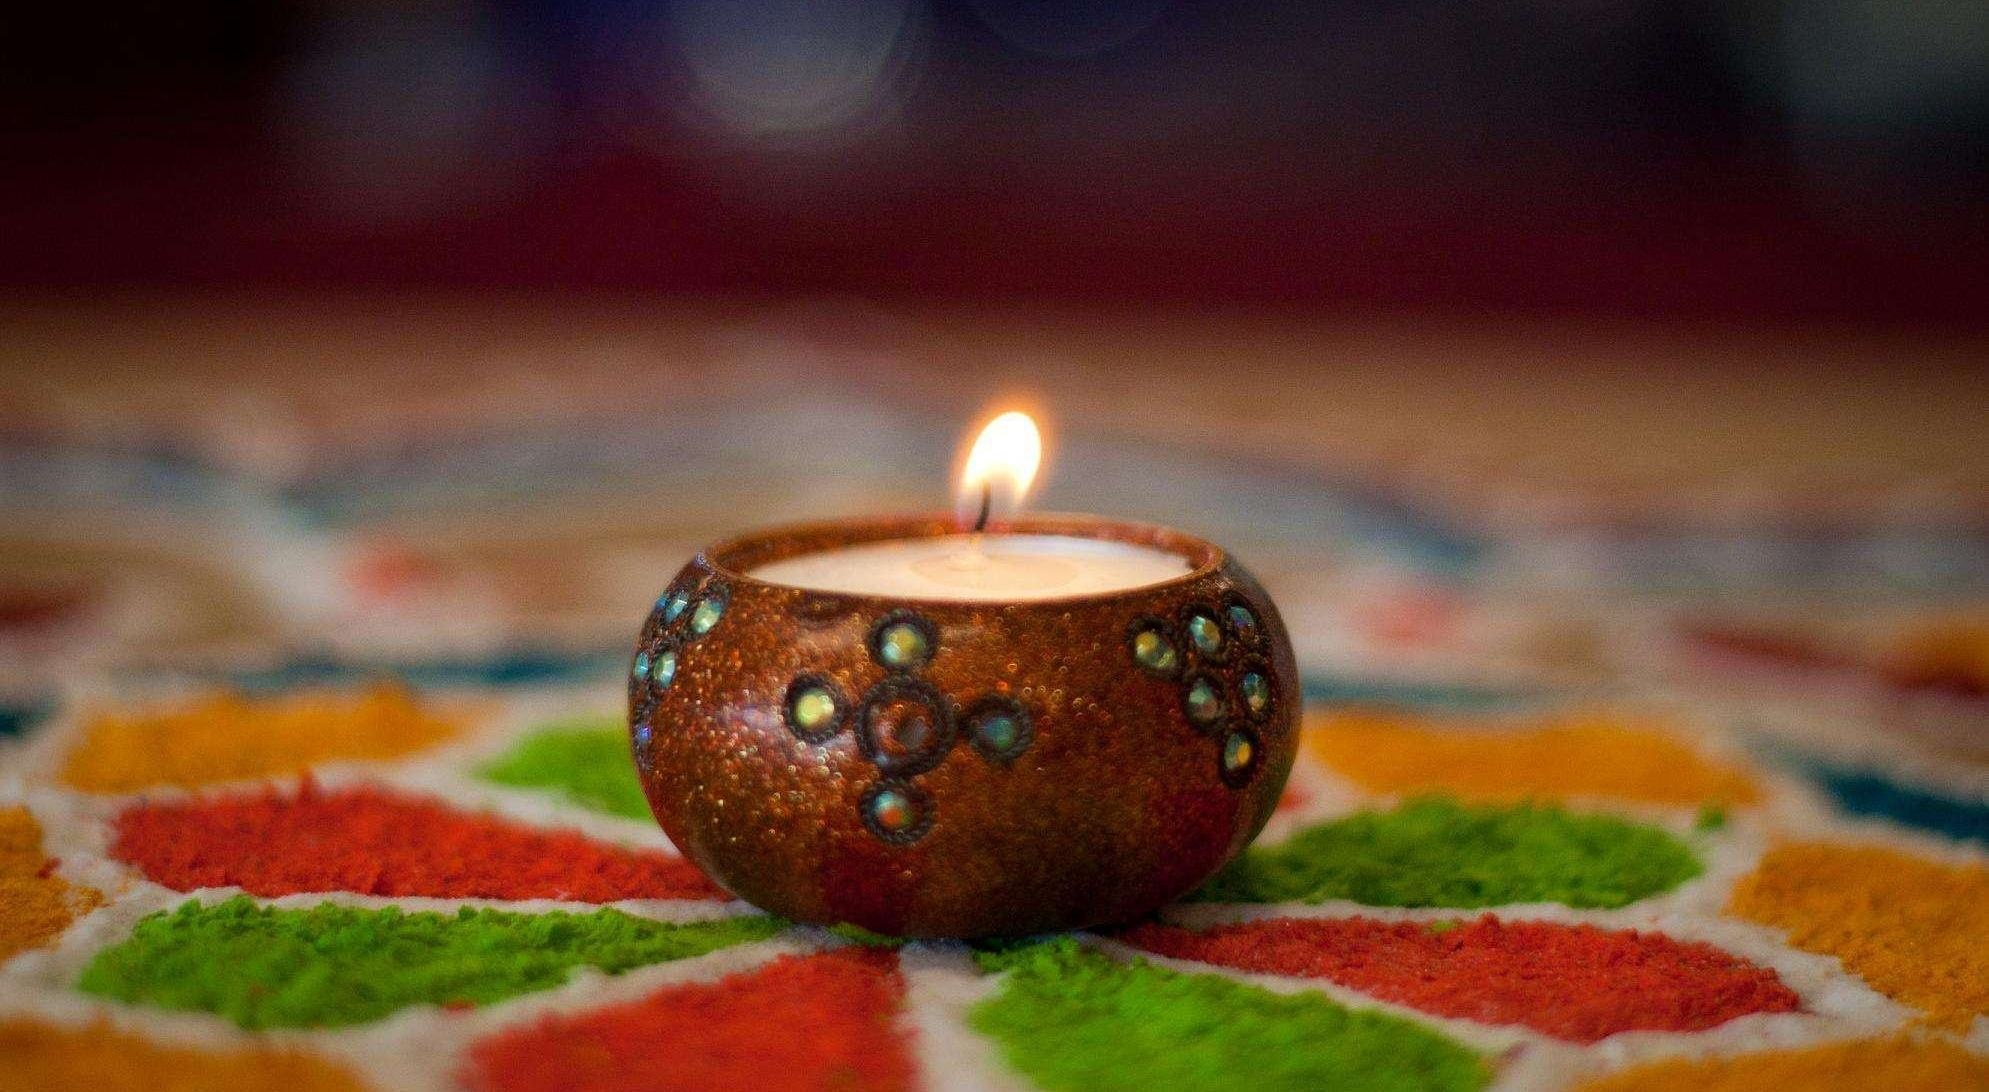 Beautiful Hd Happy Diwali With Candles Wallpaper: Diwali Festival Of Lights Is October 30